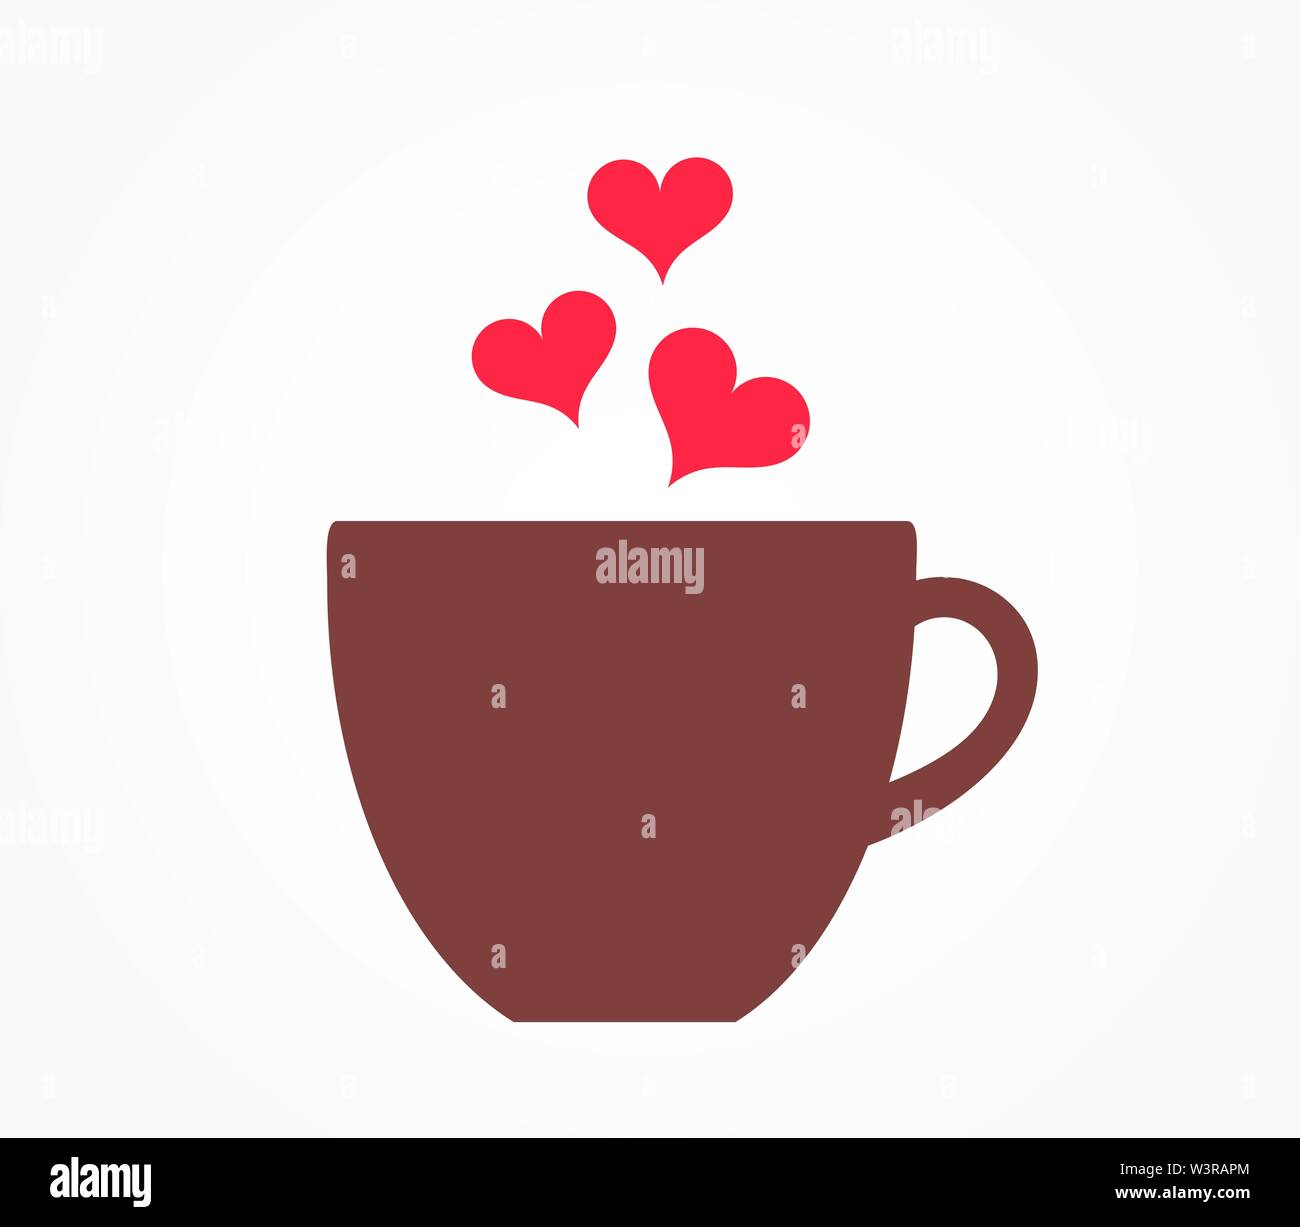 Coffee cup with hearts icon. Valentine's Day vector illustration. - Stock Image